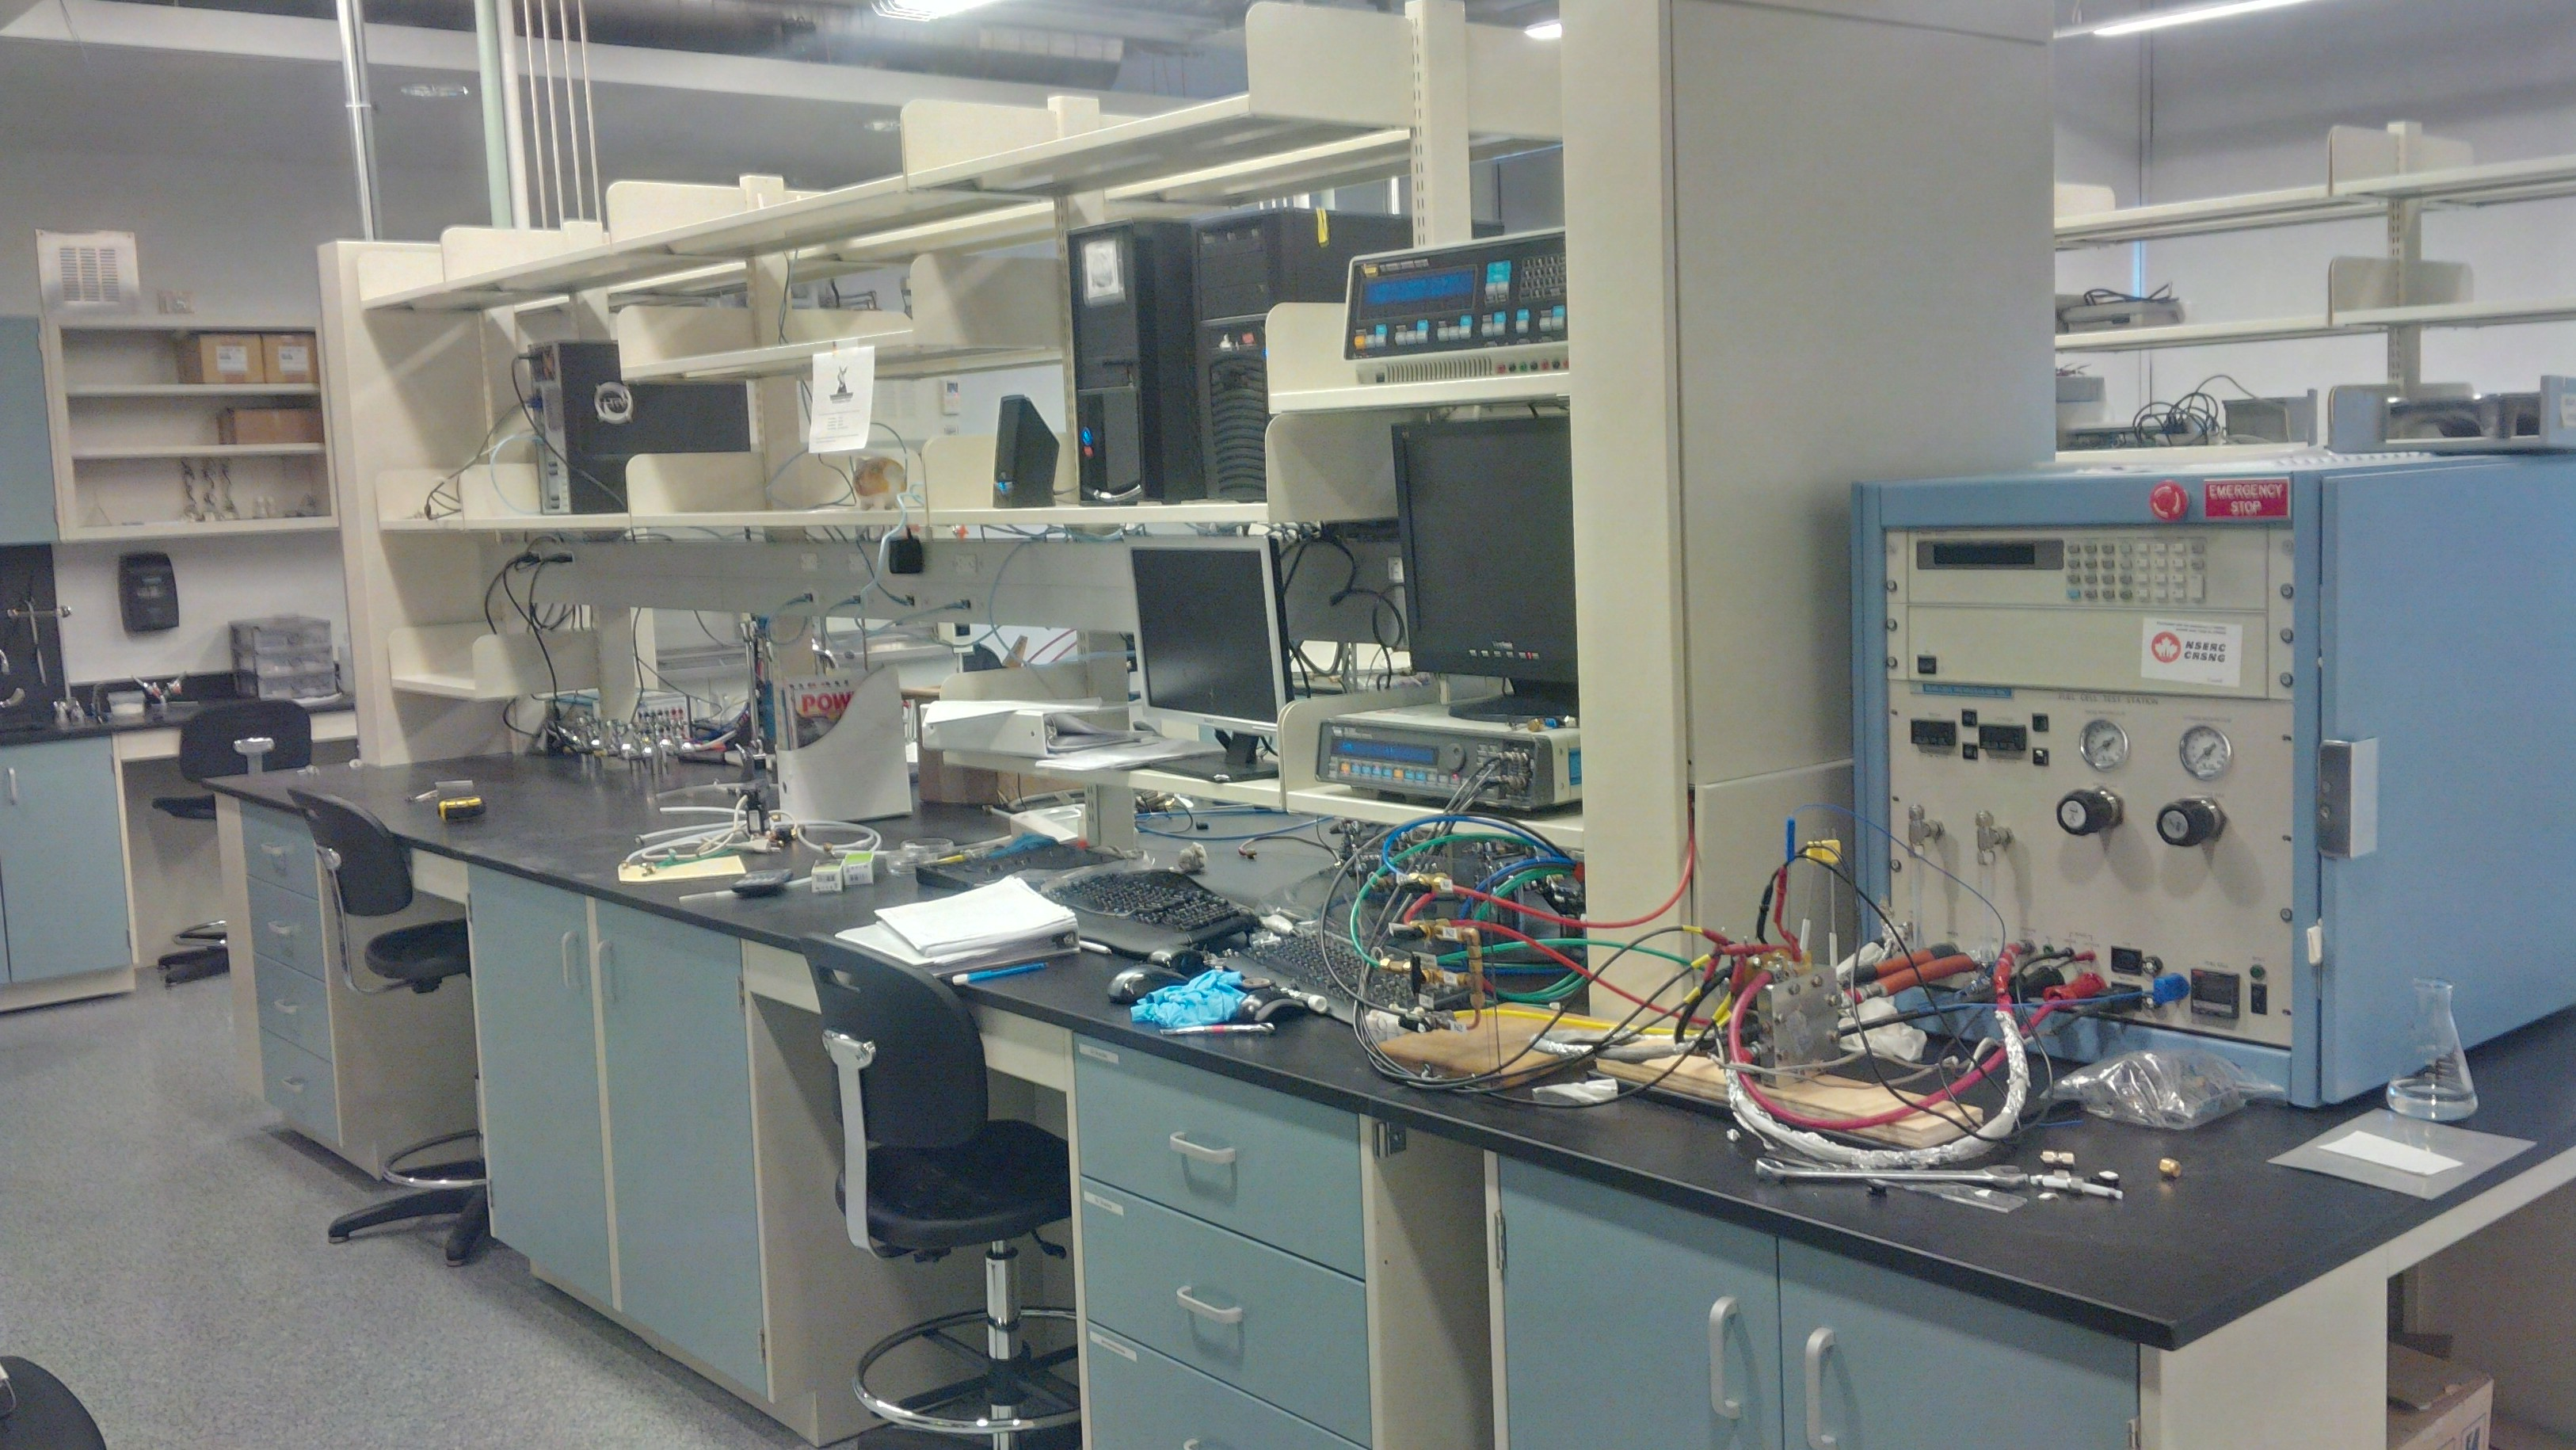 Our fuel cell testing station